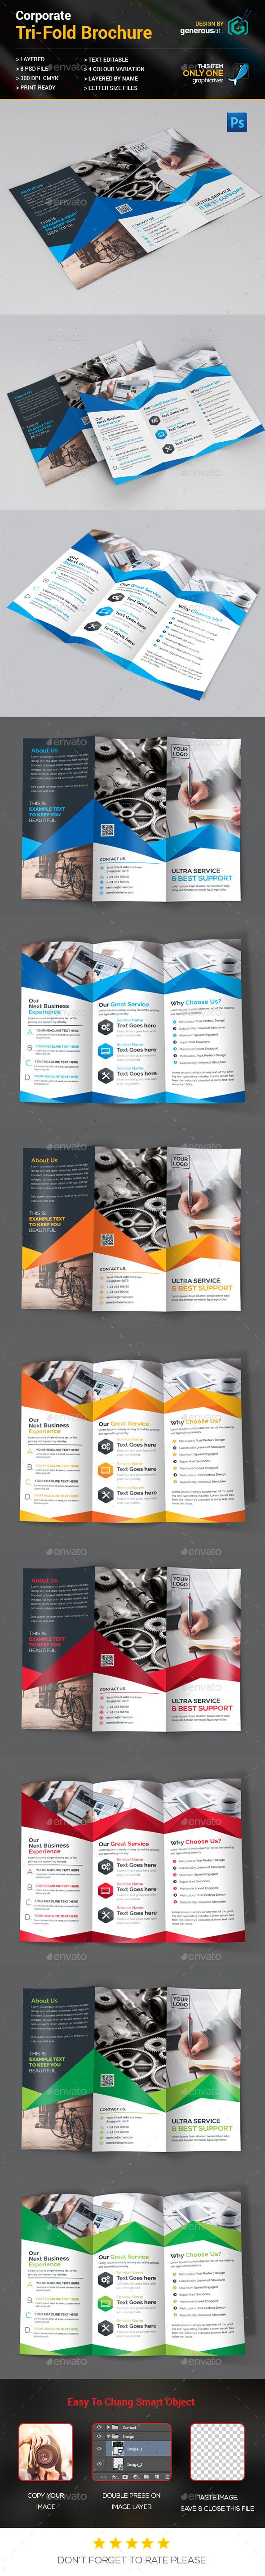 Tri-Fold Brochure Template PSD. Download here: http://graphicriver.net/item/trifold-brochure/15321059?ref=ksioks